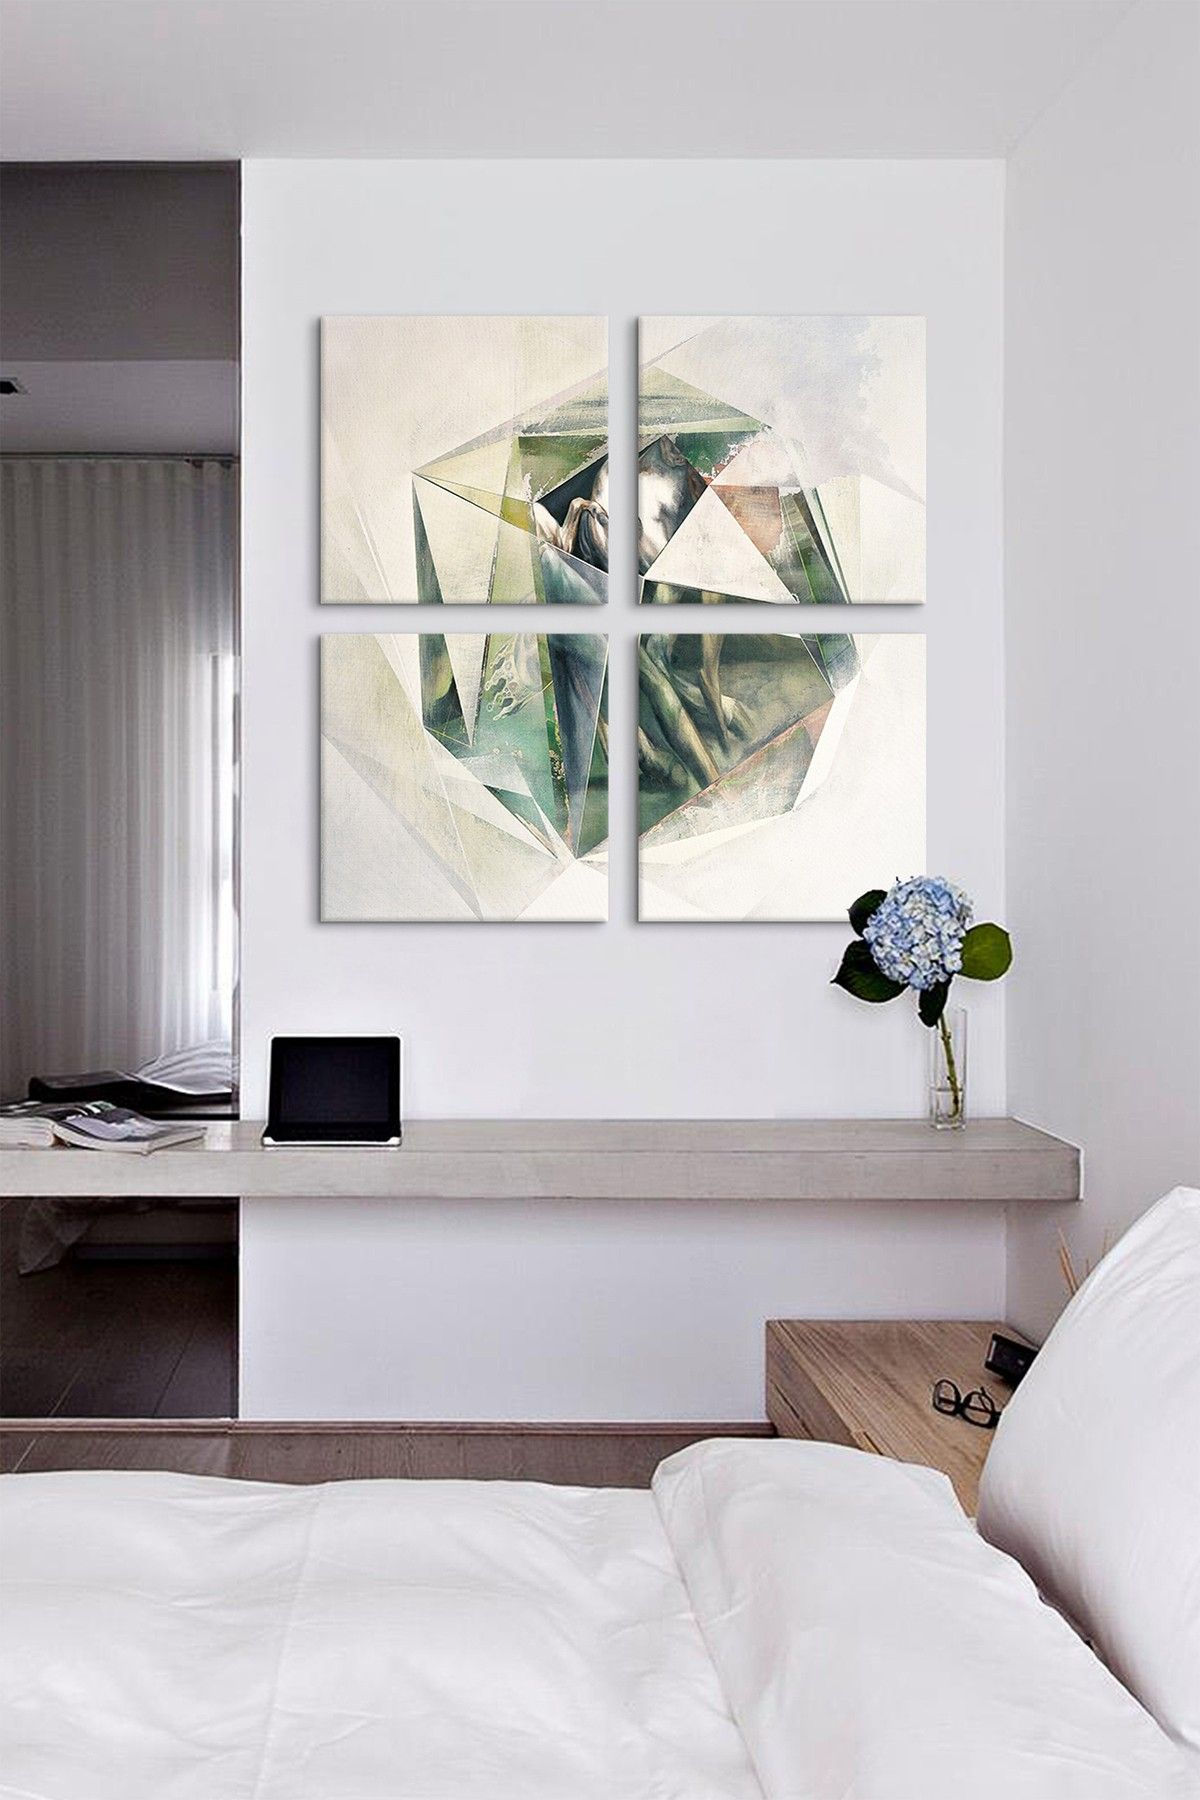 Gain Ground or the Rumble High 4 Panel Sectional Wall Art